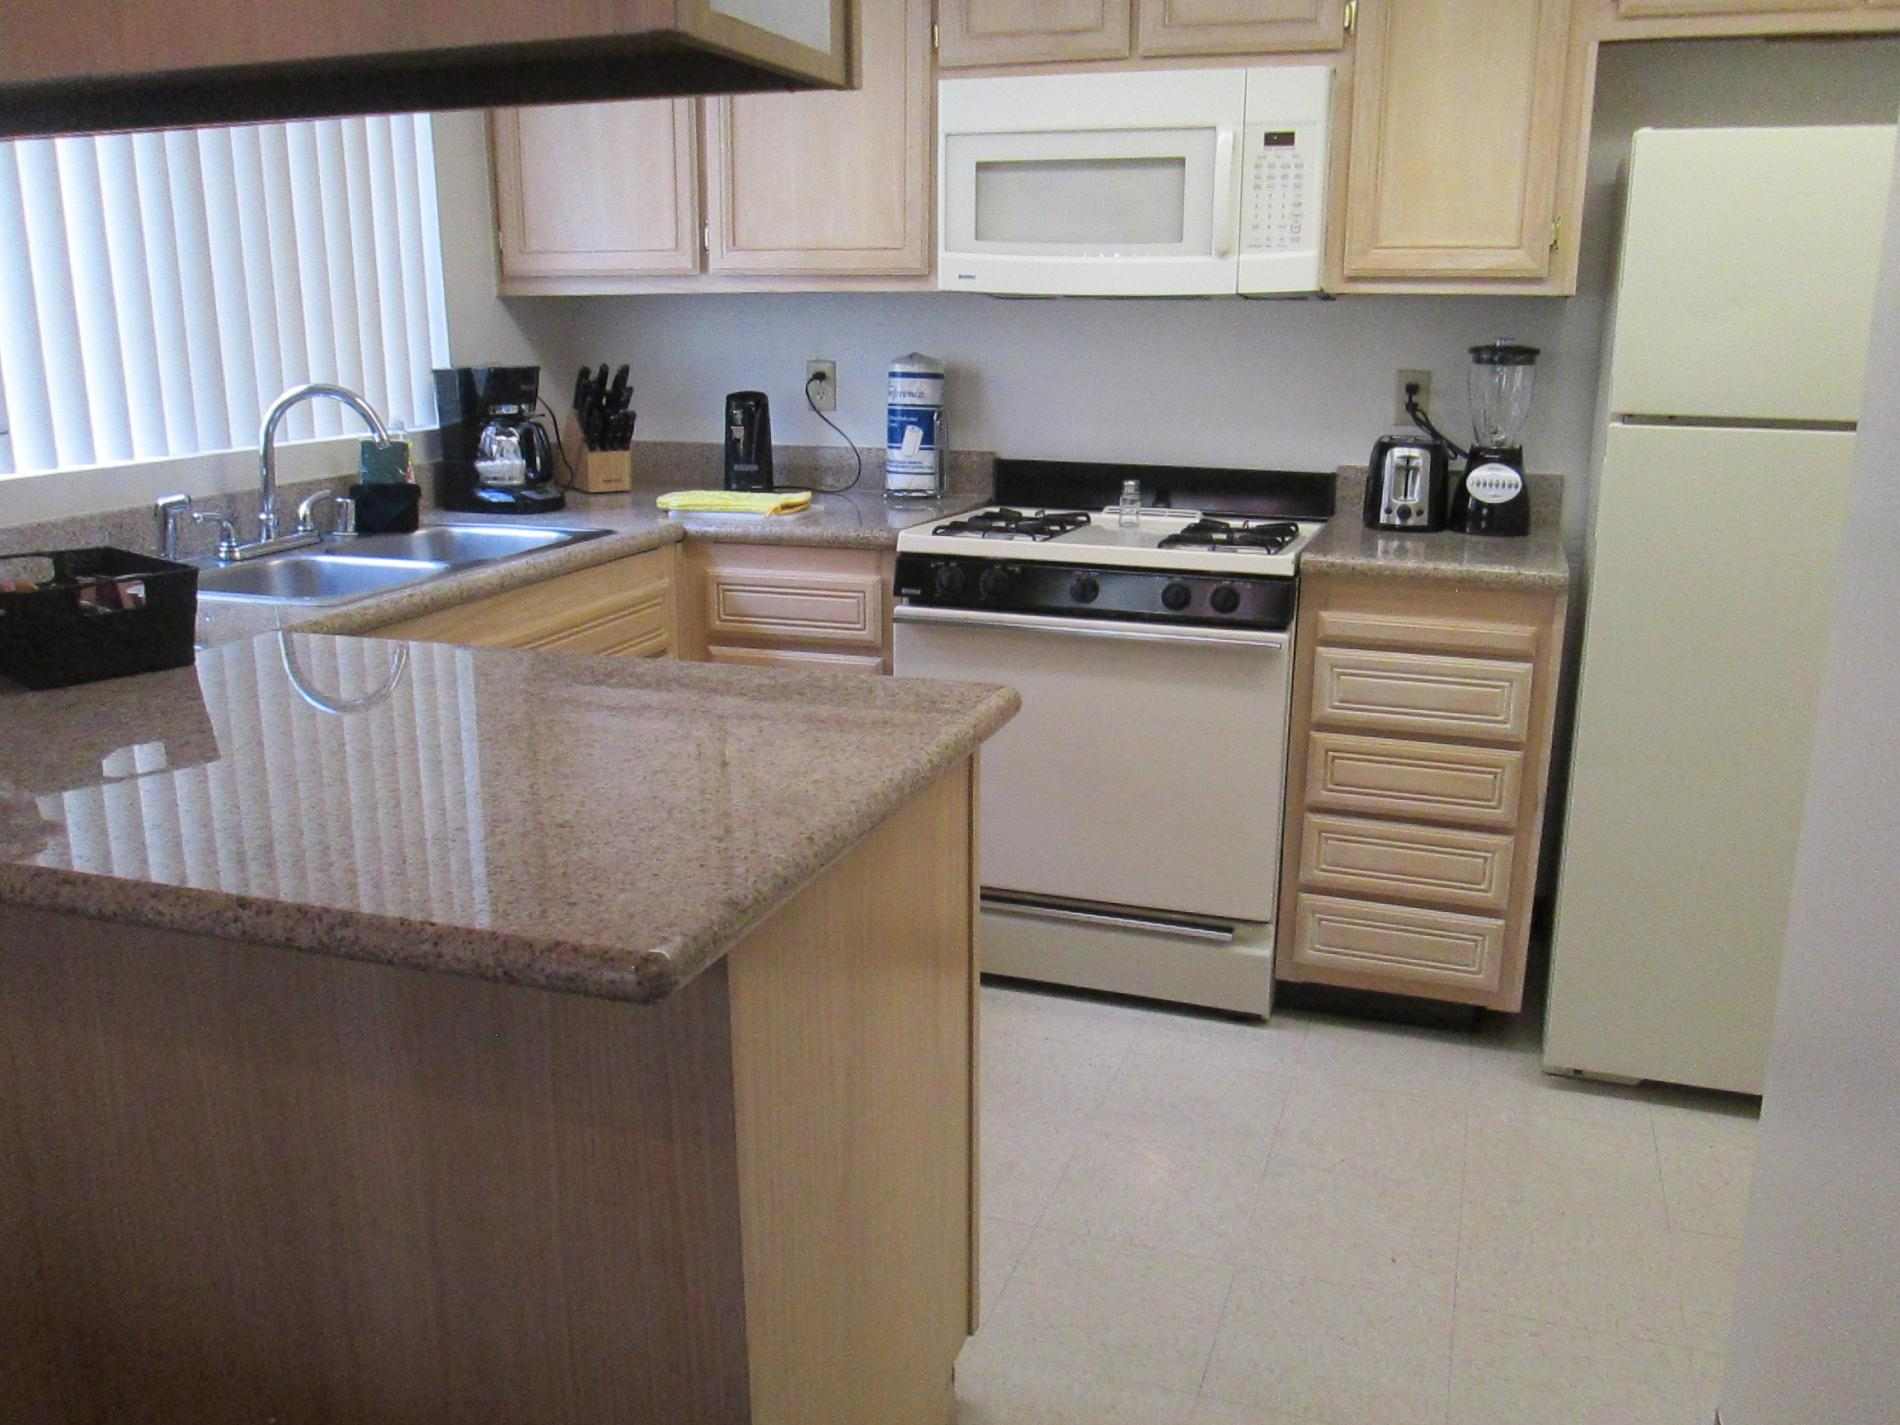 704A Family Suite at Whispering Meadows Apts. 3